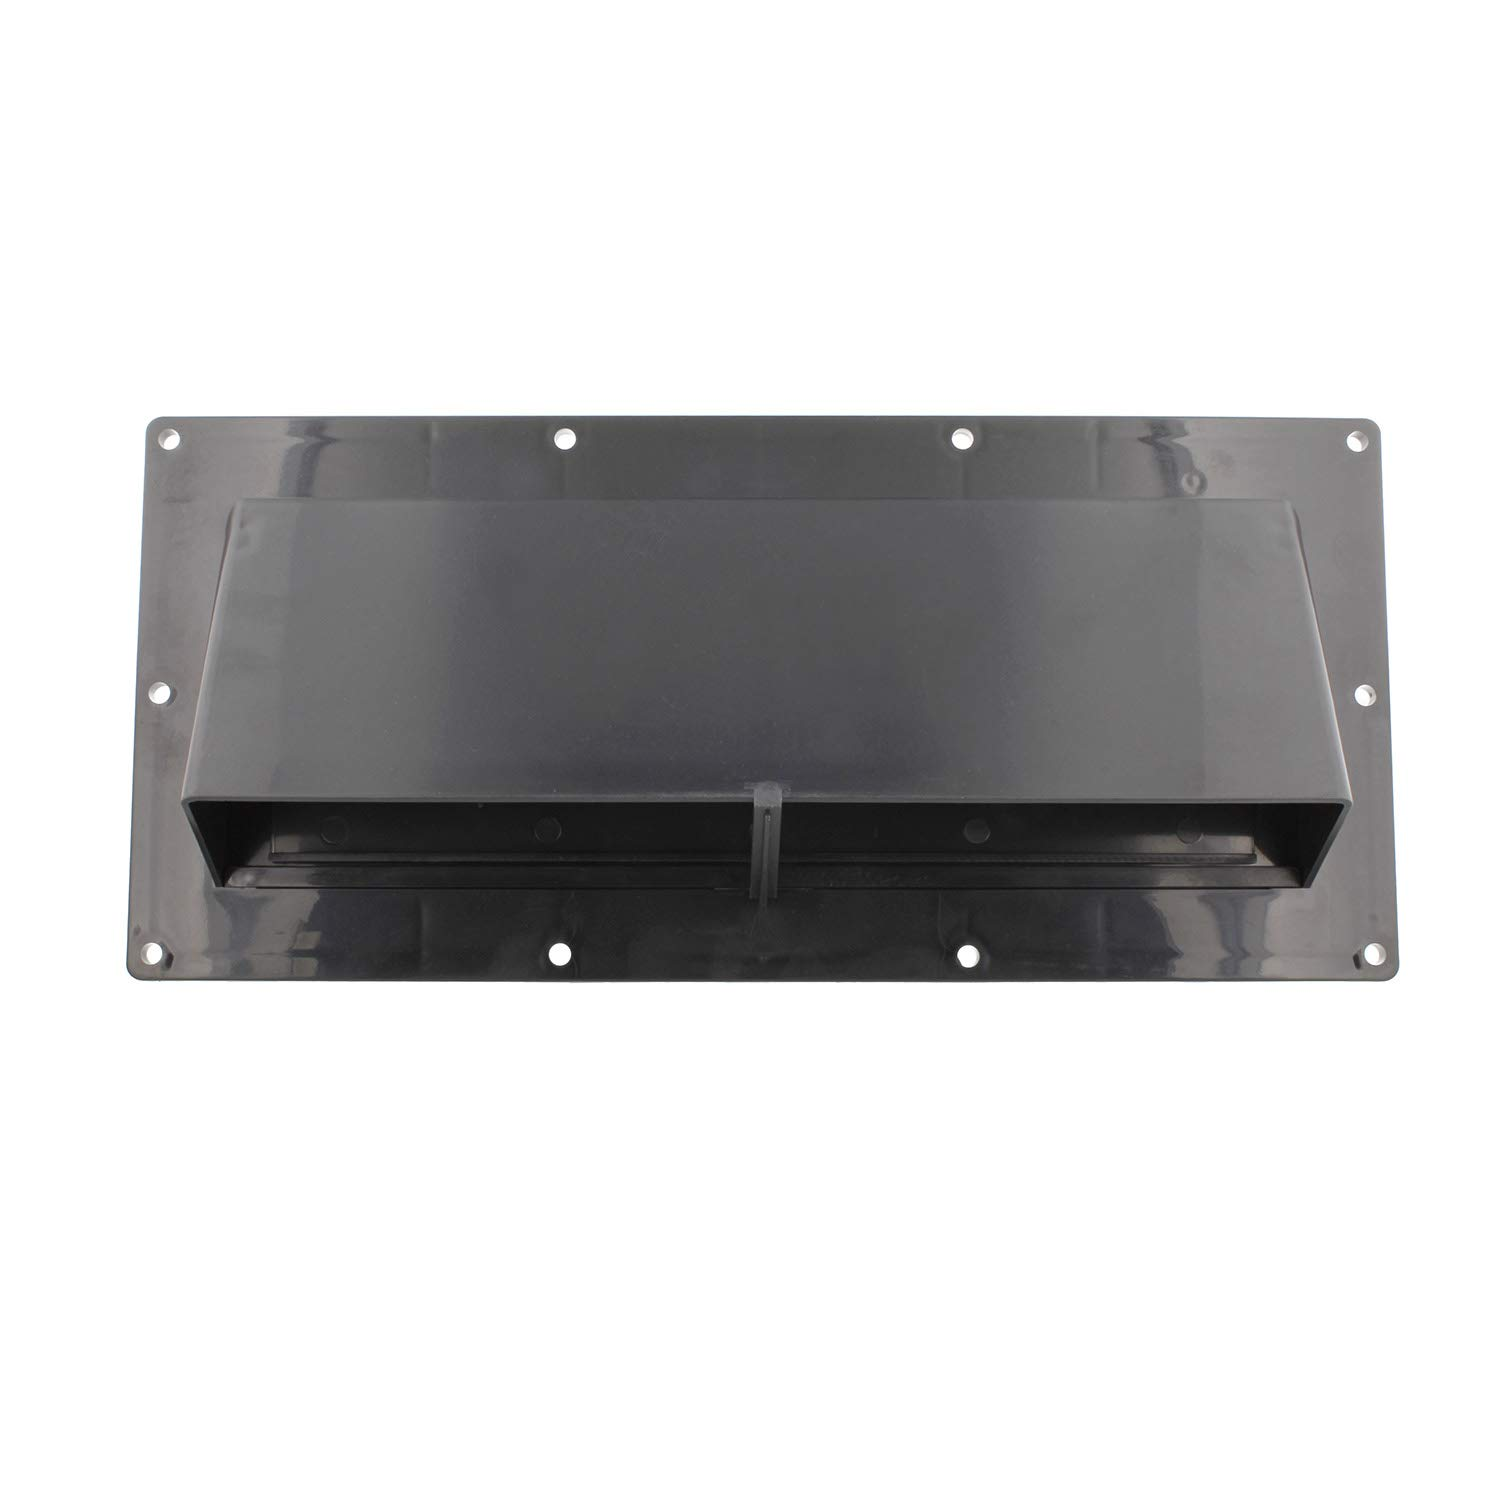 Dumble RV Range Vent Cover Exterior Vent with Locking Damper and Screws, RV Exhaust Vent Cover for RV Stove Vent - Black by Dumble